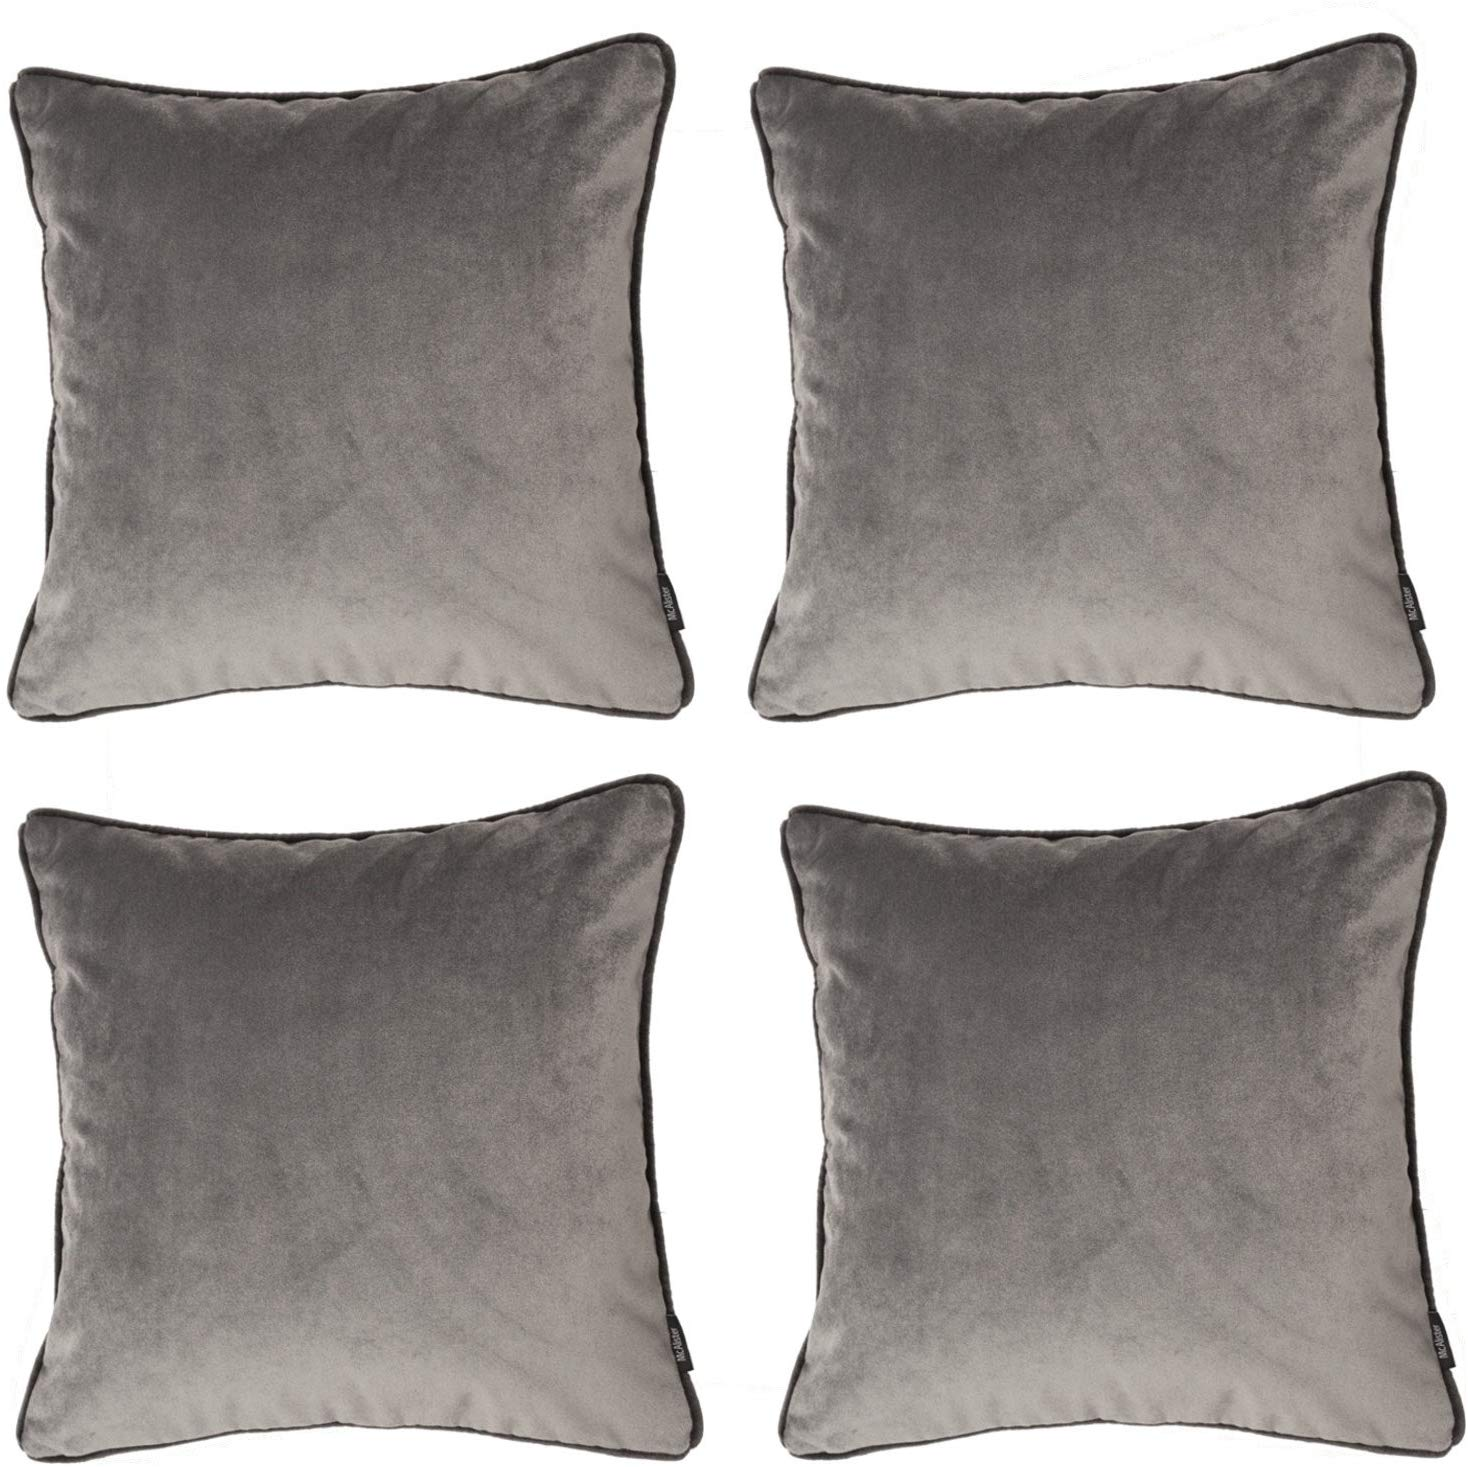 McAlister Textiles Matt Soft Silver Velvet 43cm x 43cm Cushion Sets Cushions and Covers Cushion Covers Set of 4